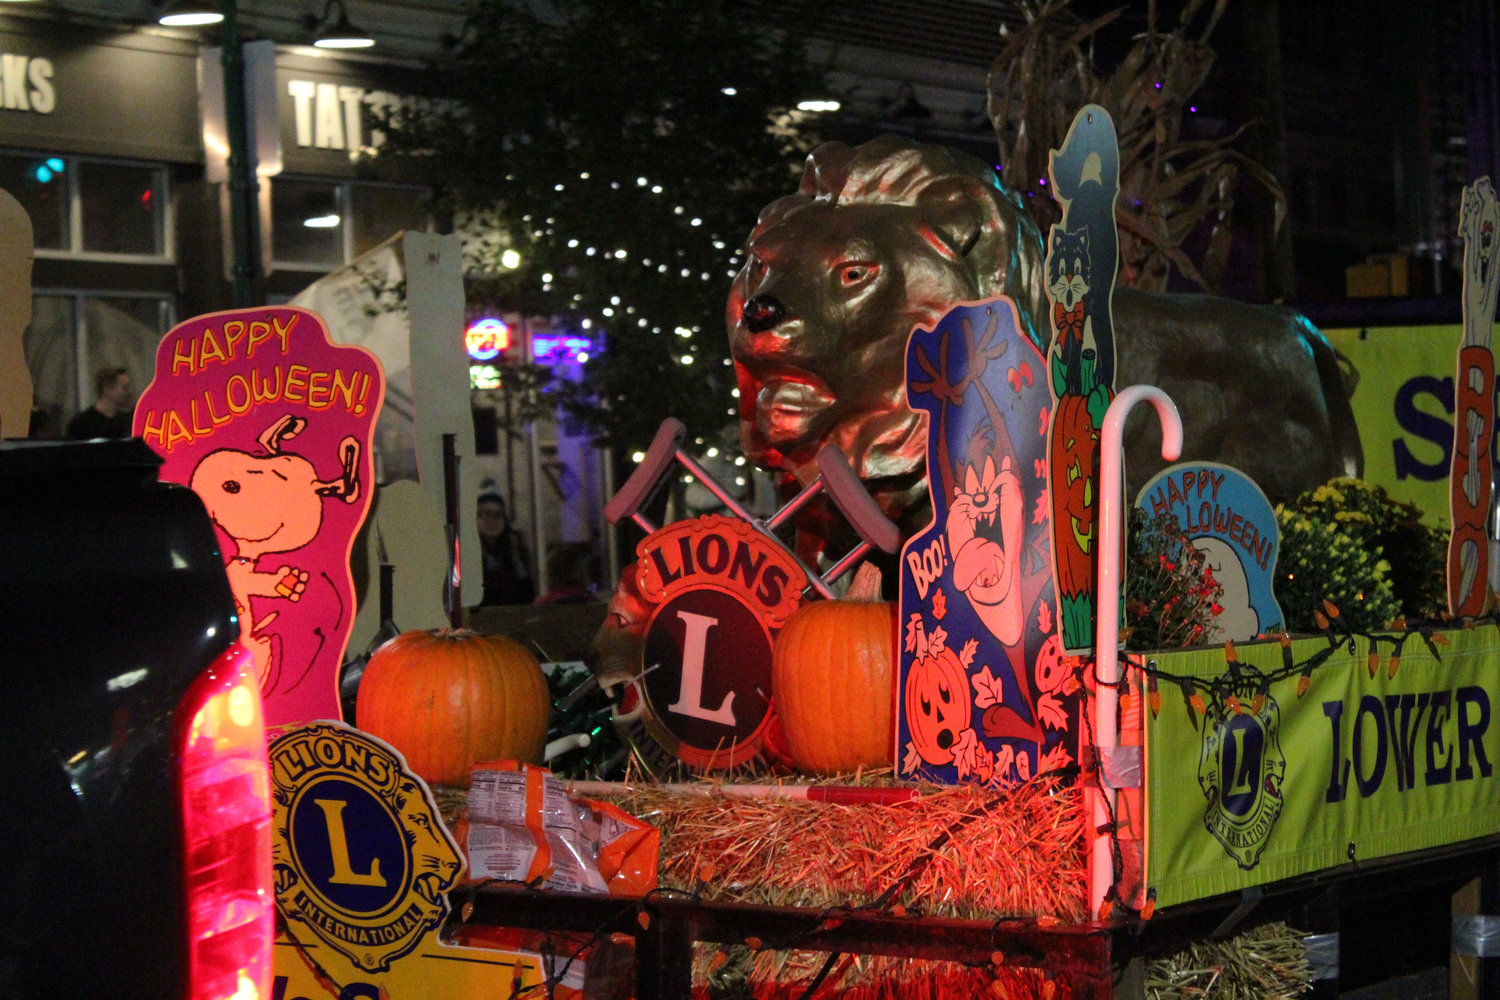 The Lower Swatara Lions Club's float during the Halloween parade on Oct. 16.